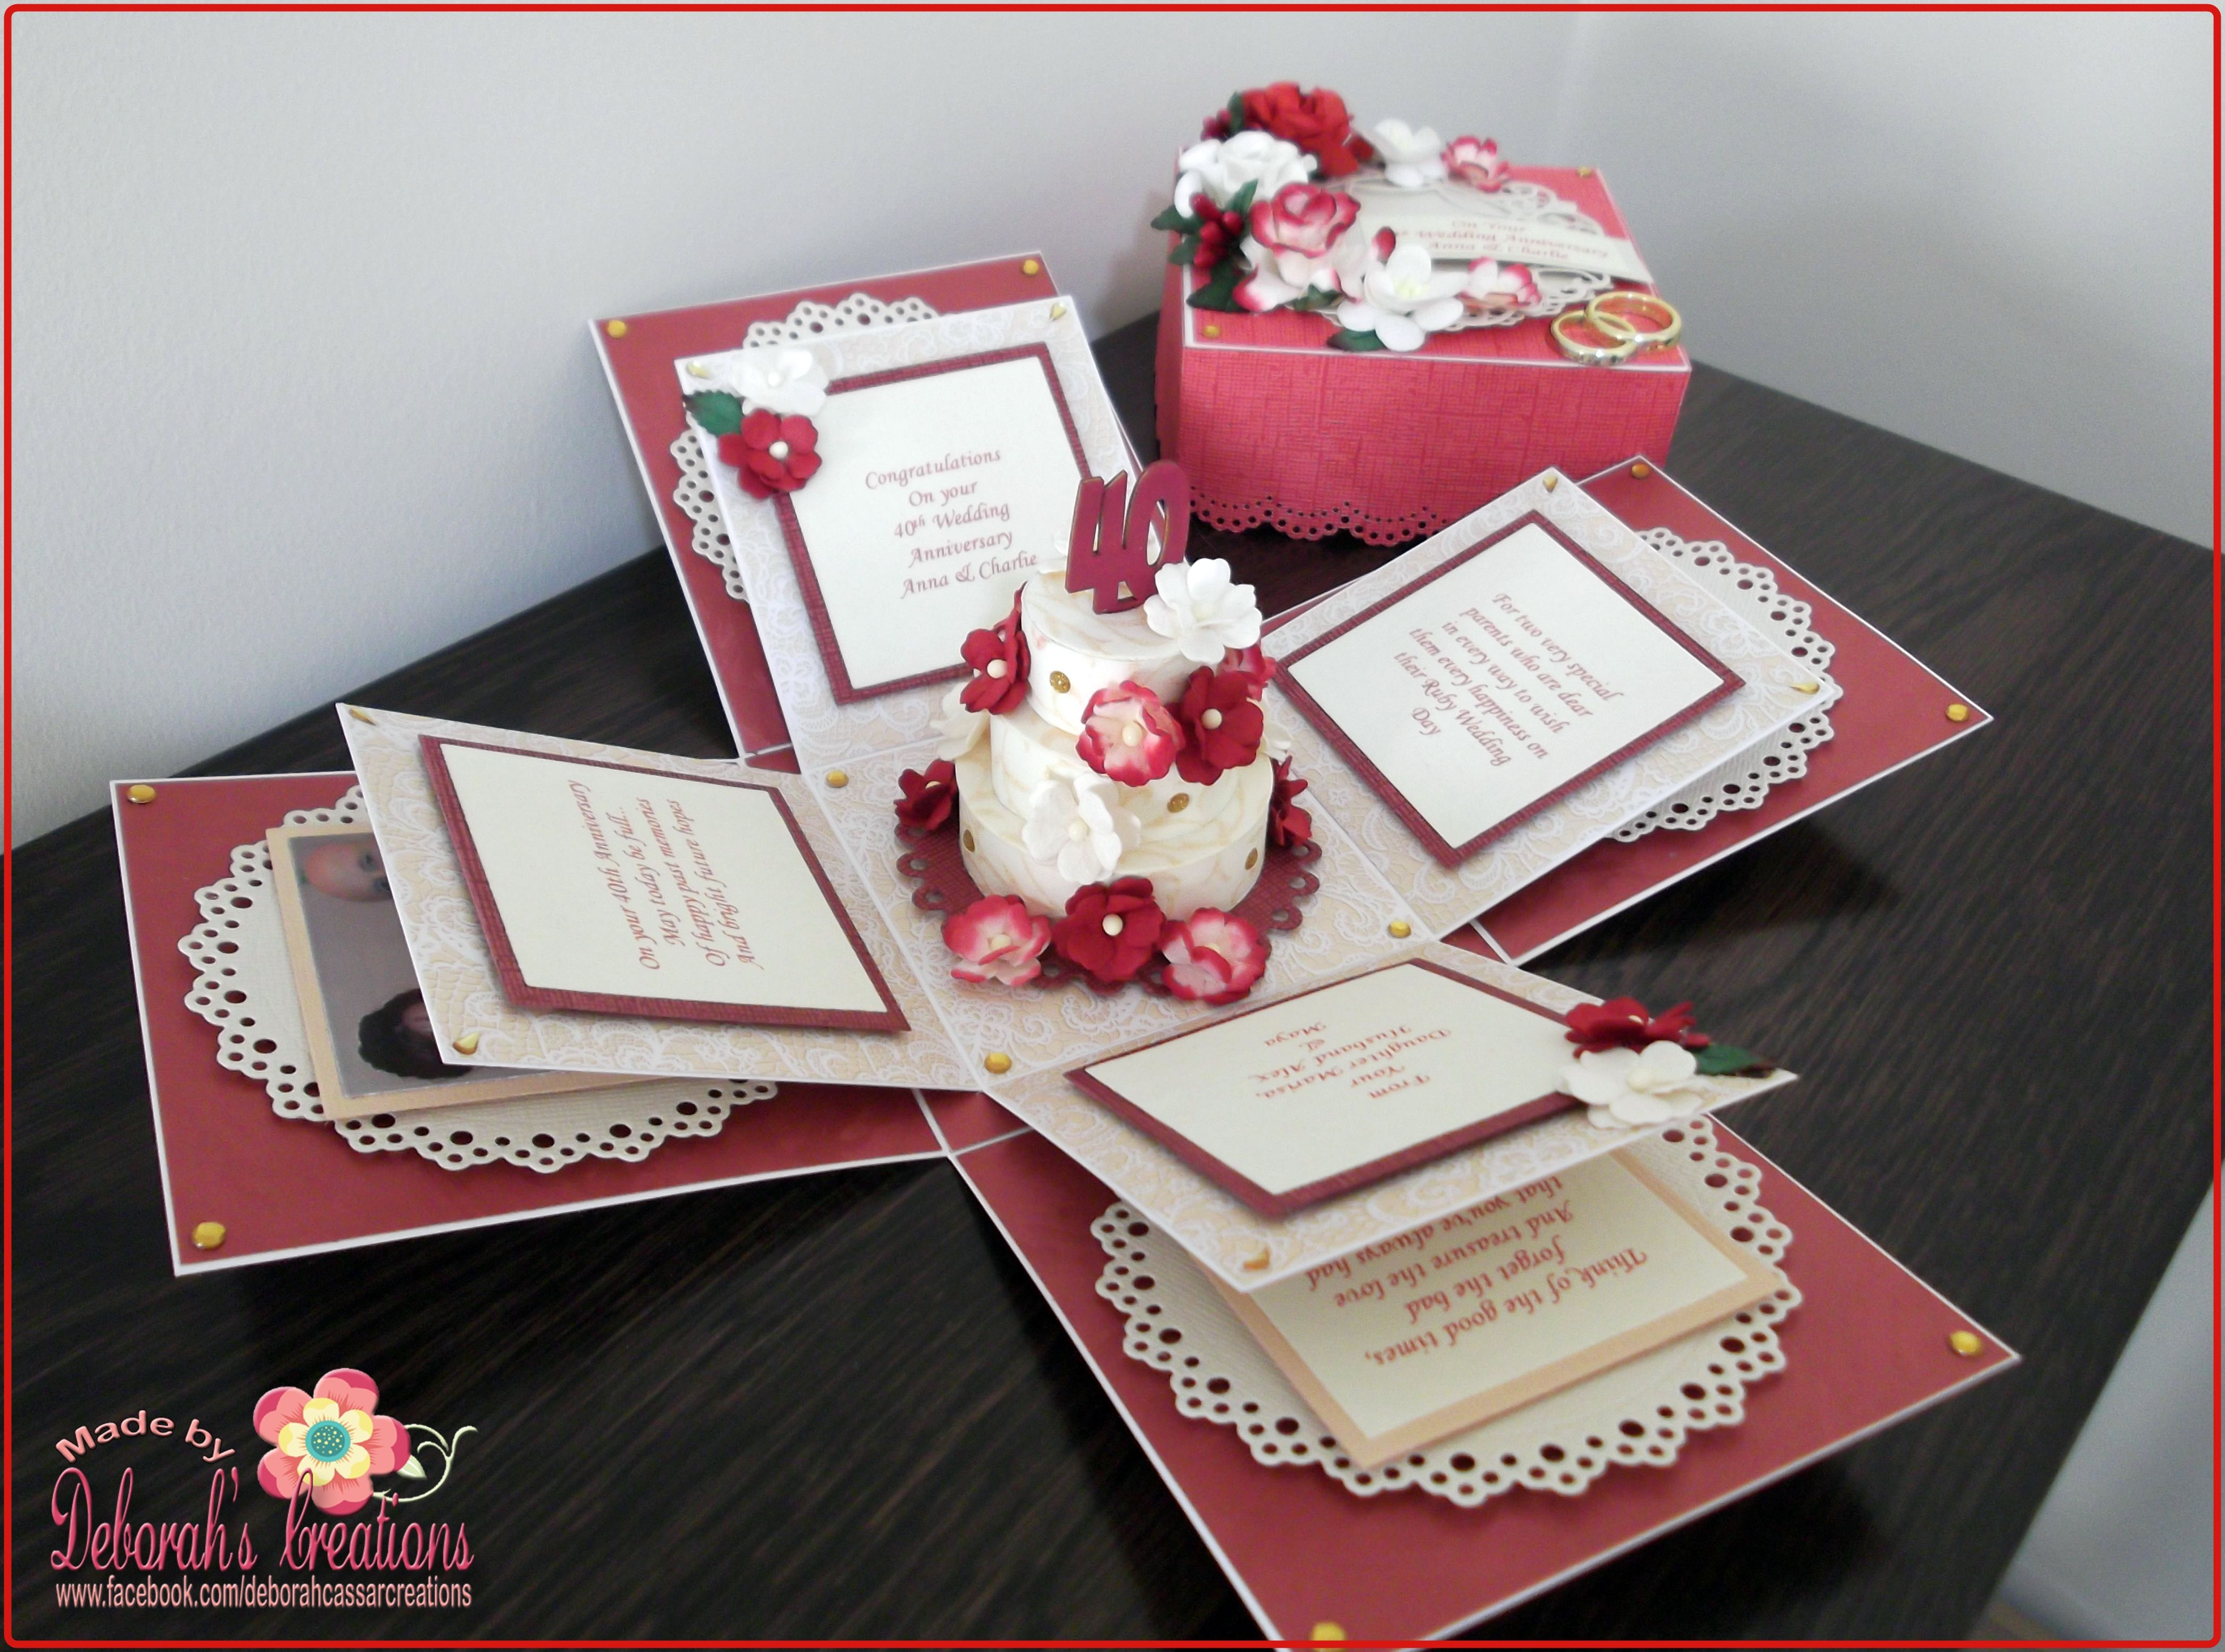 40th Wedding Anniversary Exploding Box Card Exploding Box Card Pop Up Card Templates Pop Up Box Cards